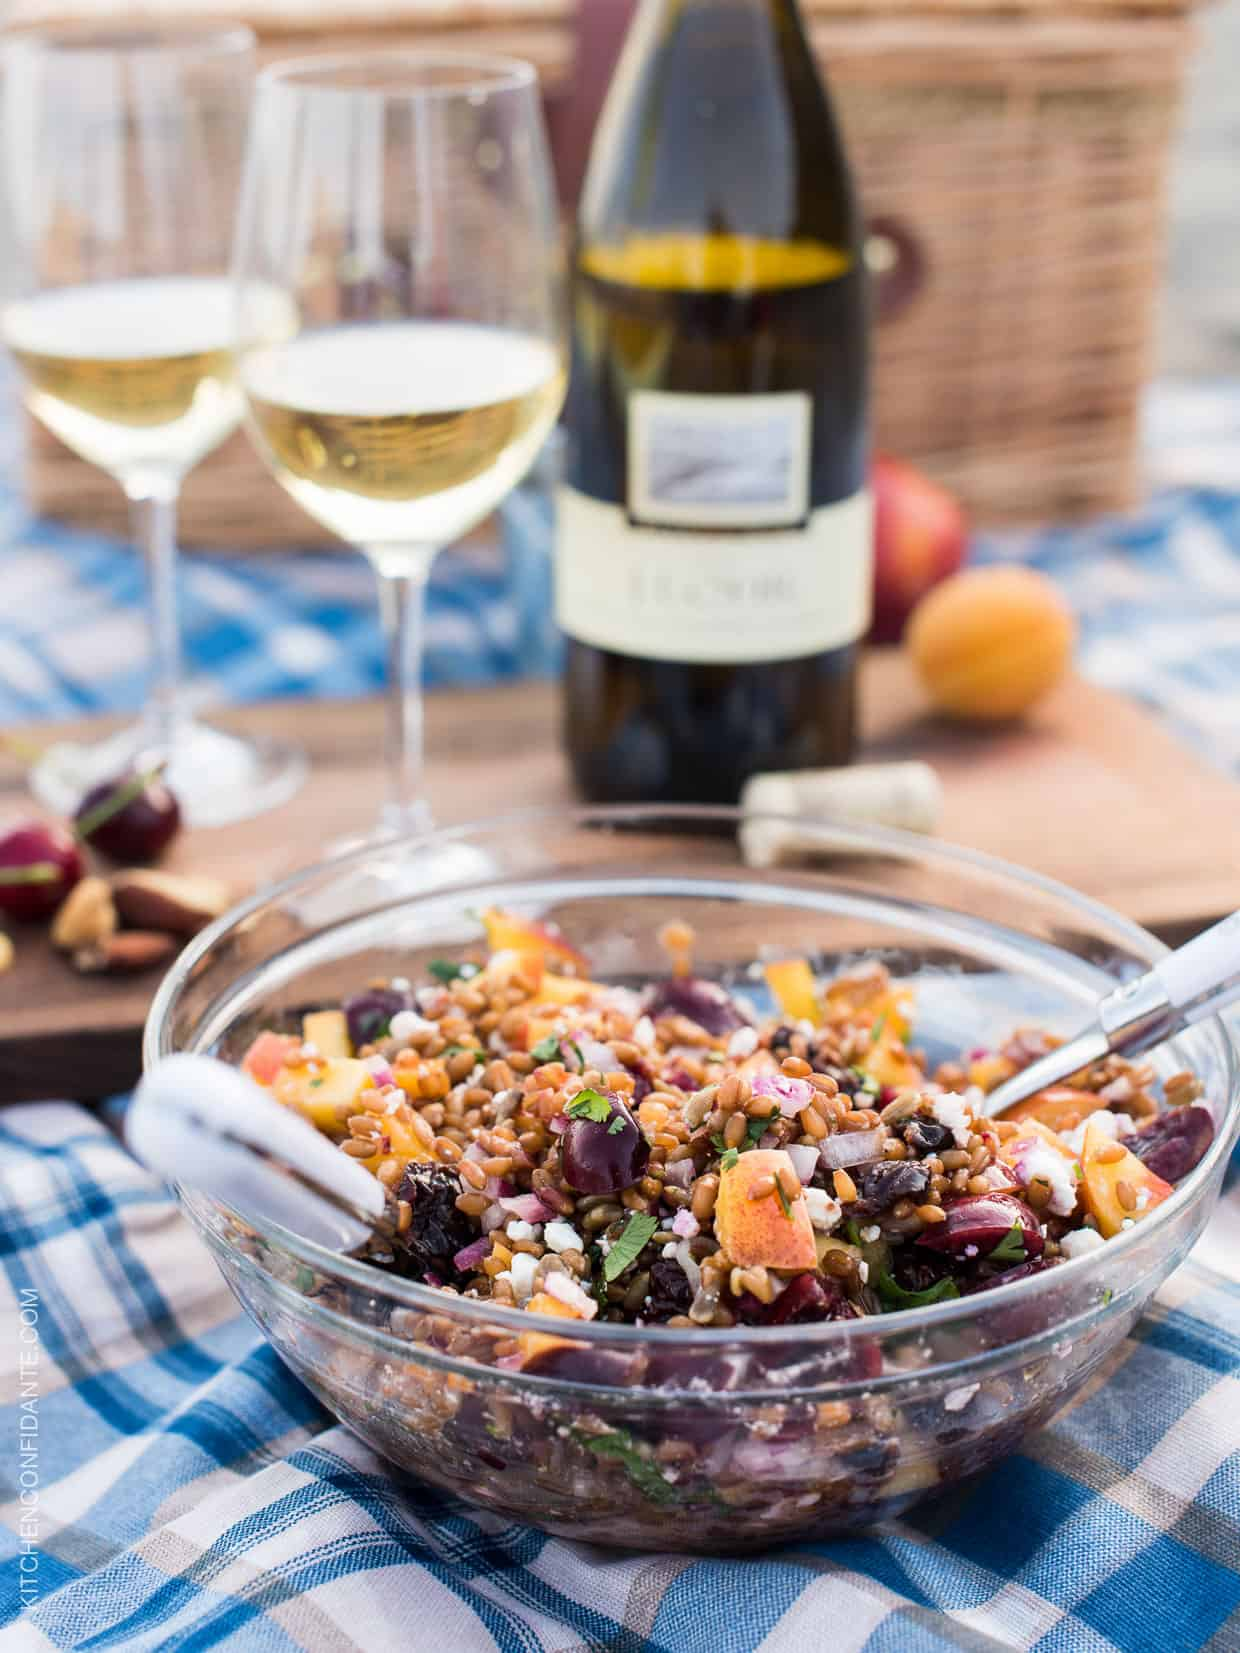 Picnic on a California beach with glasses of J. Lohr Chardonnay, Summer Wheat Berry Salad, and fresh cherries.